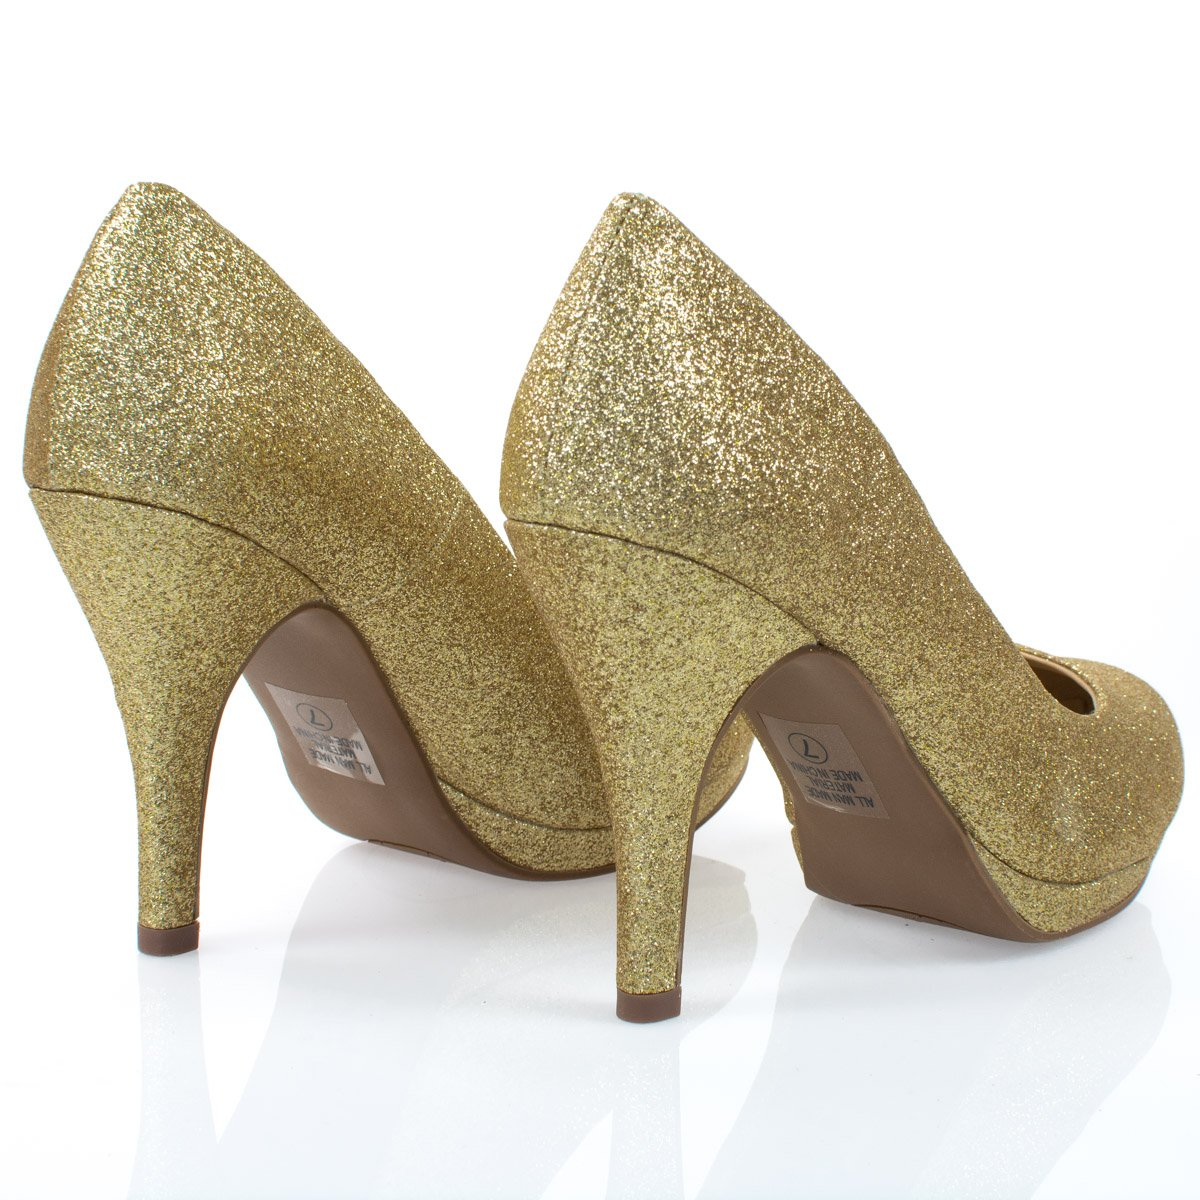 Women's Classic Dress Pump W Extra Cushioned in Sole Round Toe & Platform,Goldglt,8 by City Classified (Image #4)